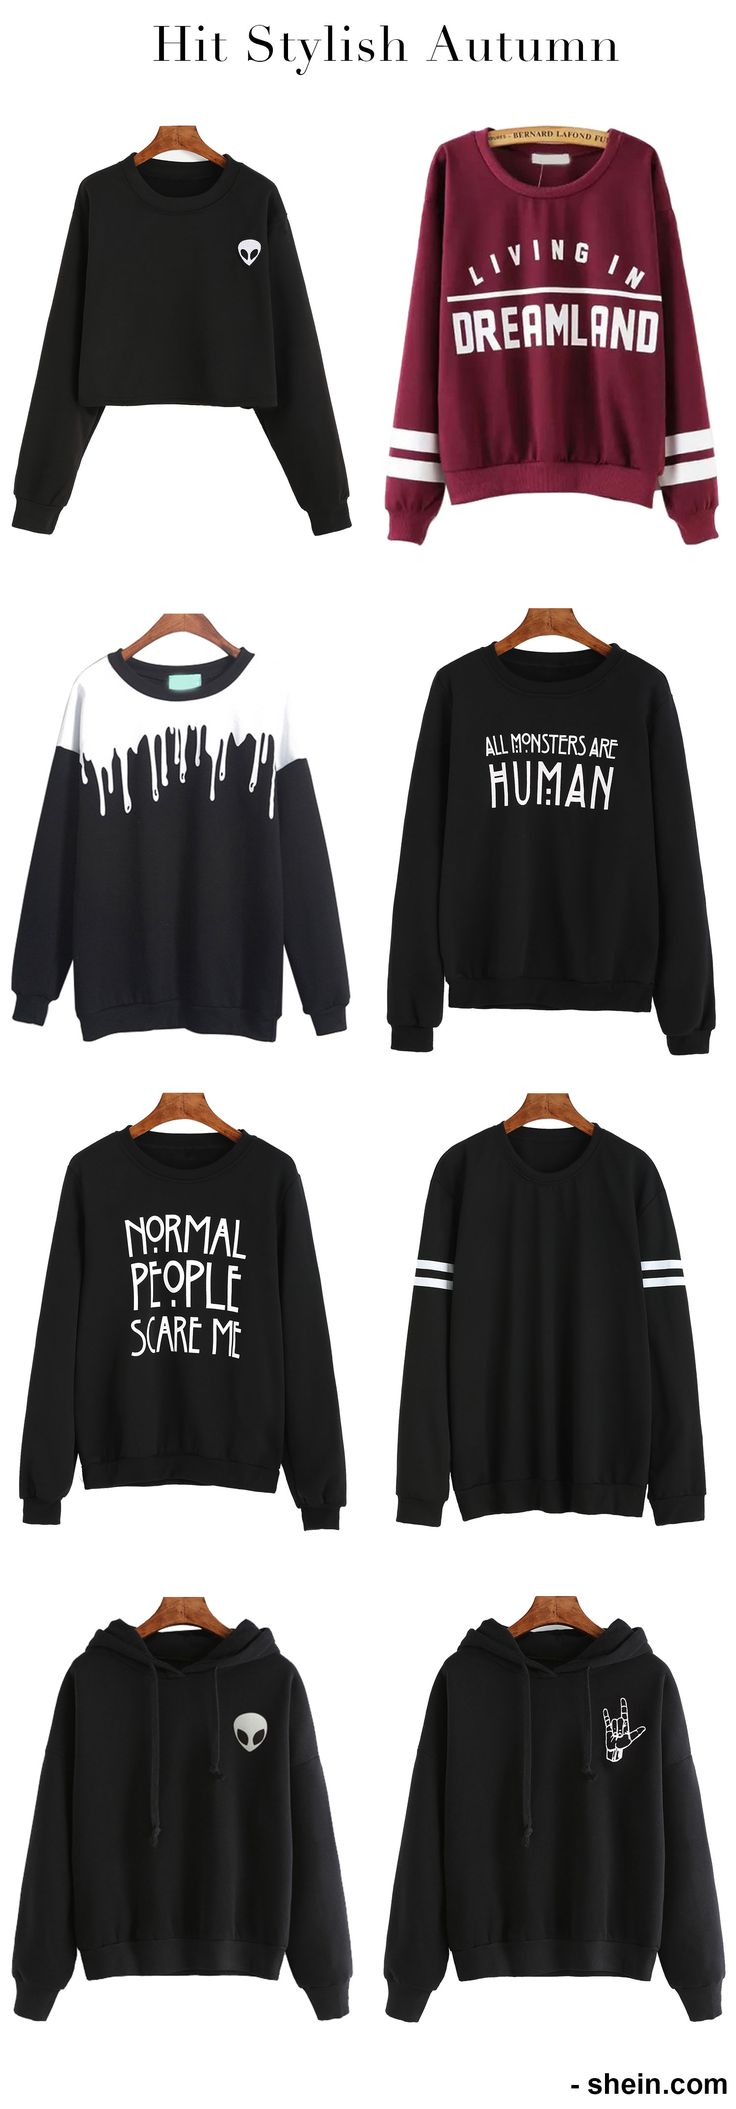 Shop hot sweatshirt online. I love black ones most. So so much sweatshirts for my early fall in my closet!